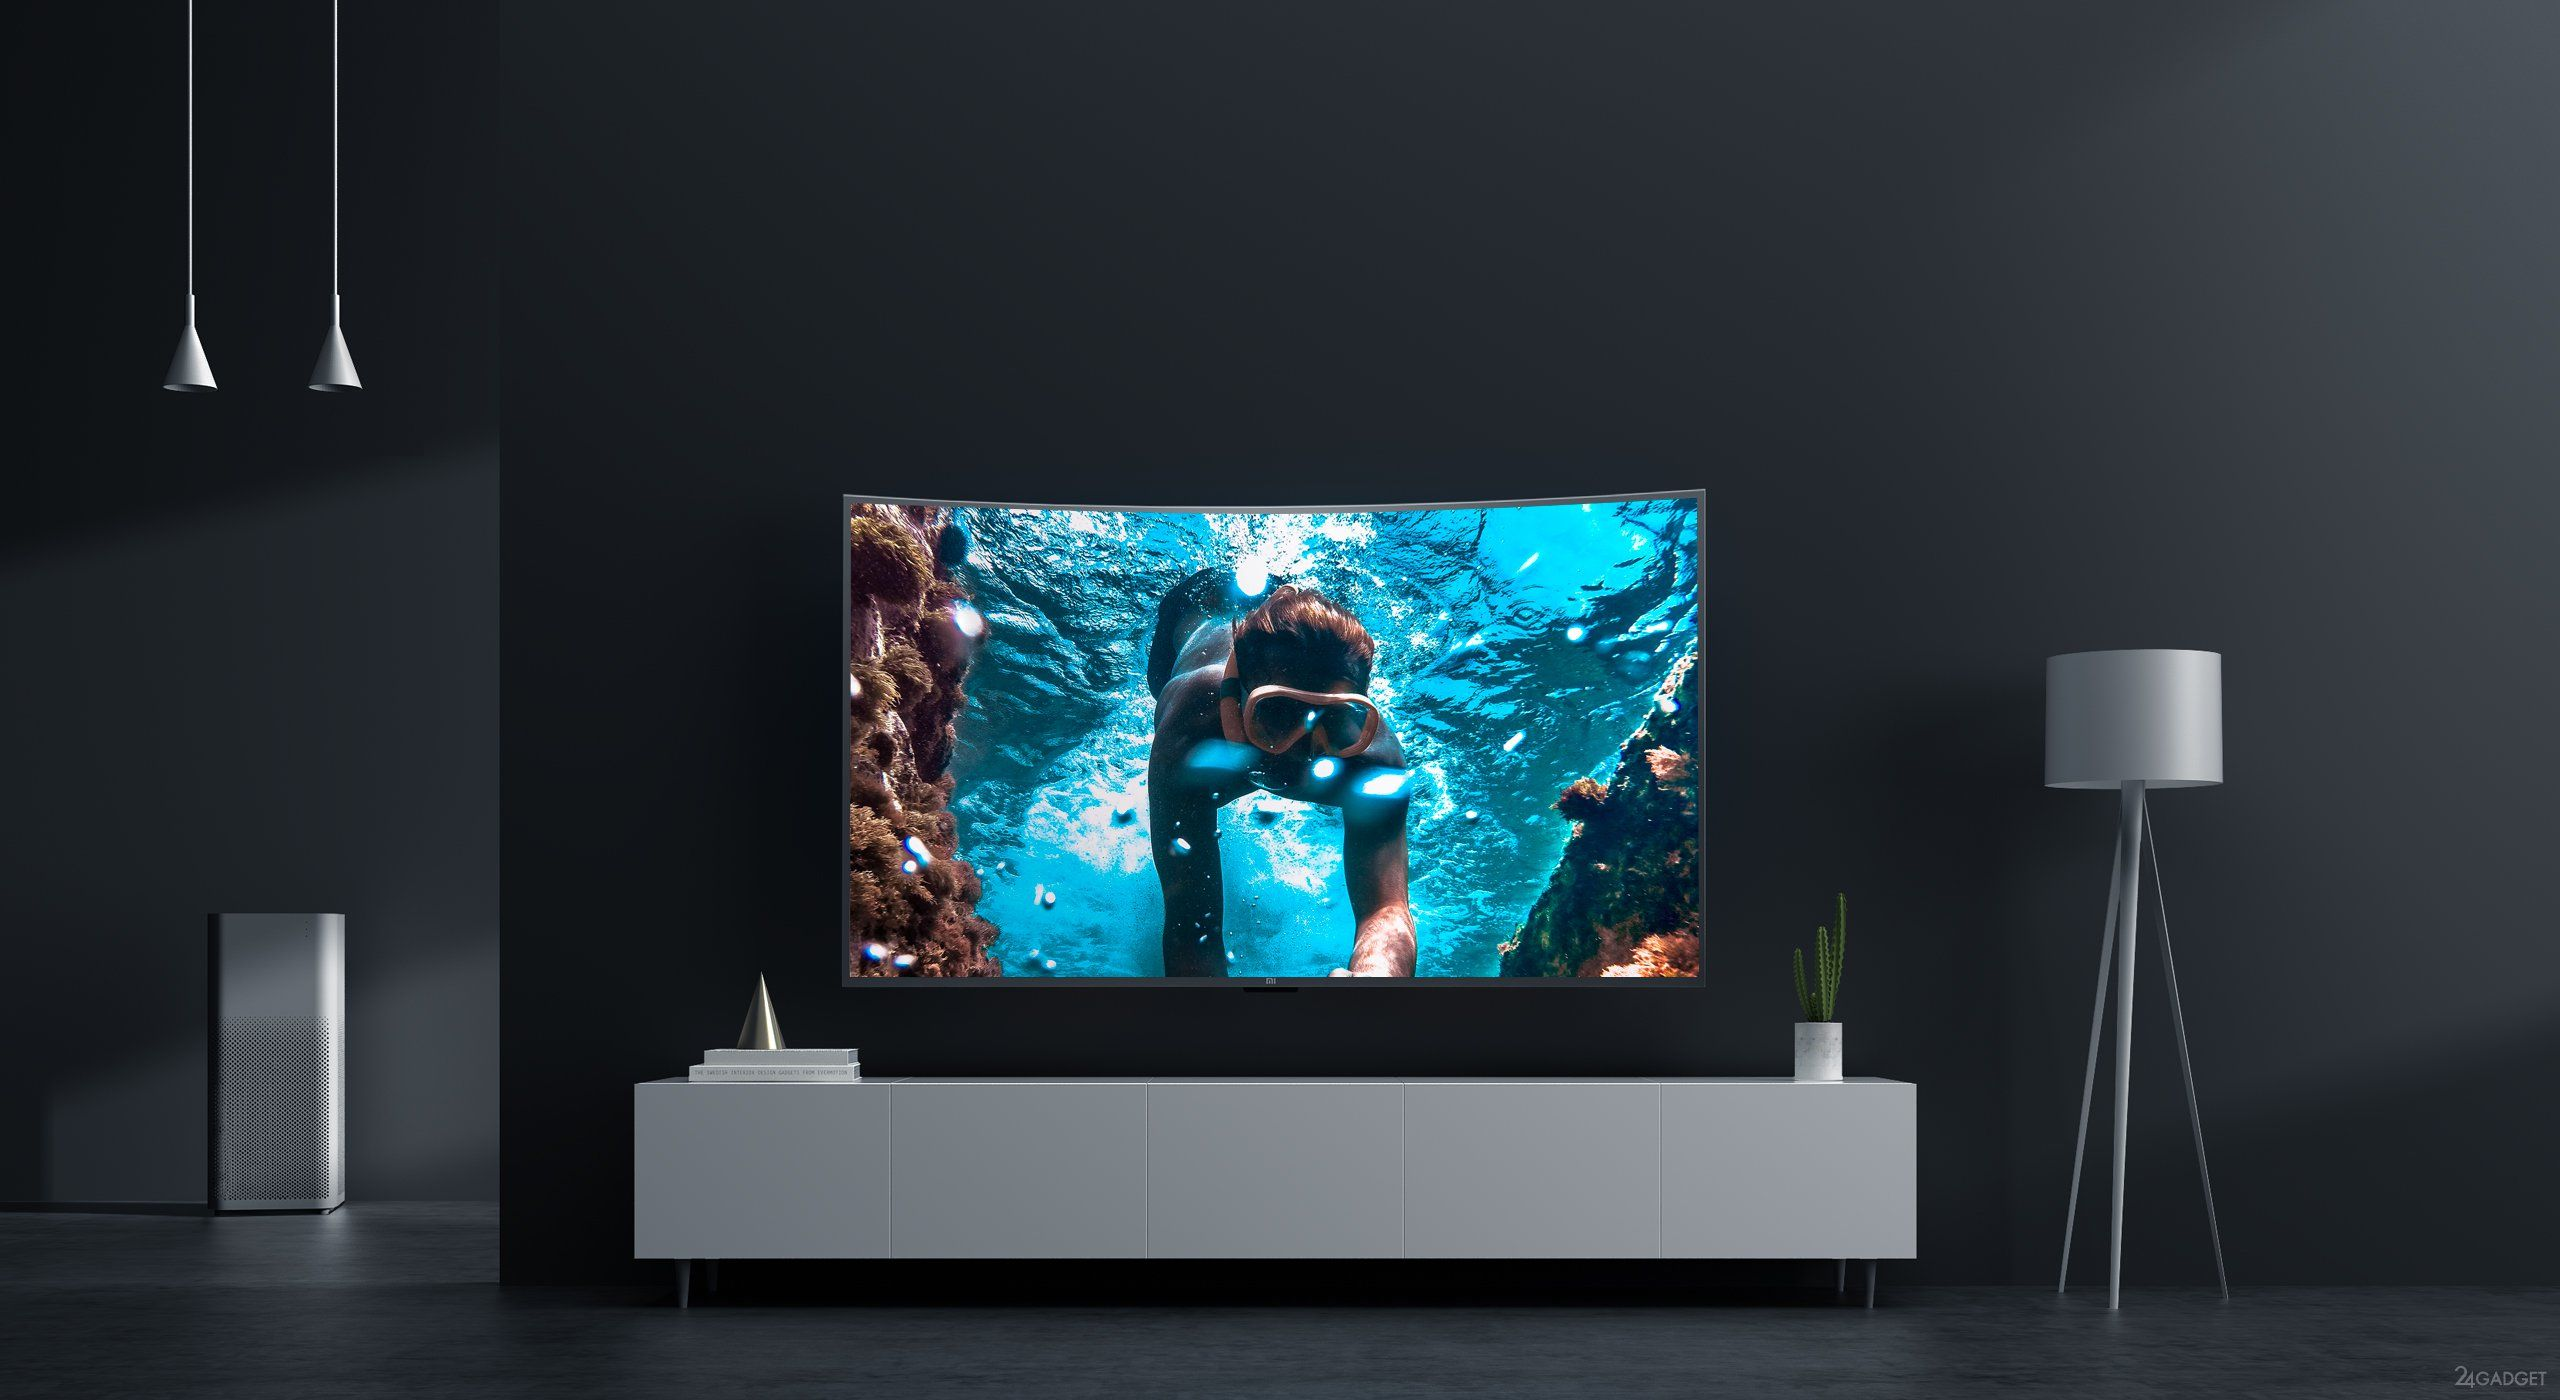 Xiaomi has significantly lowered the price for Mi TV 4S TV